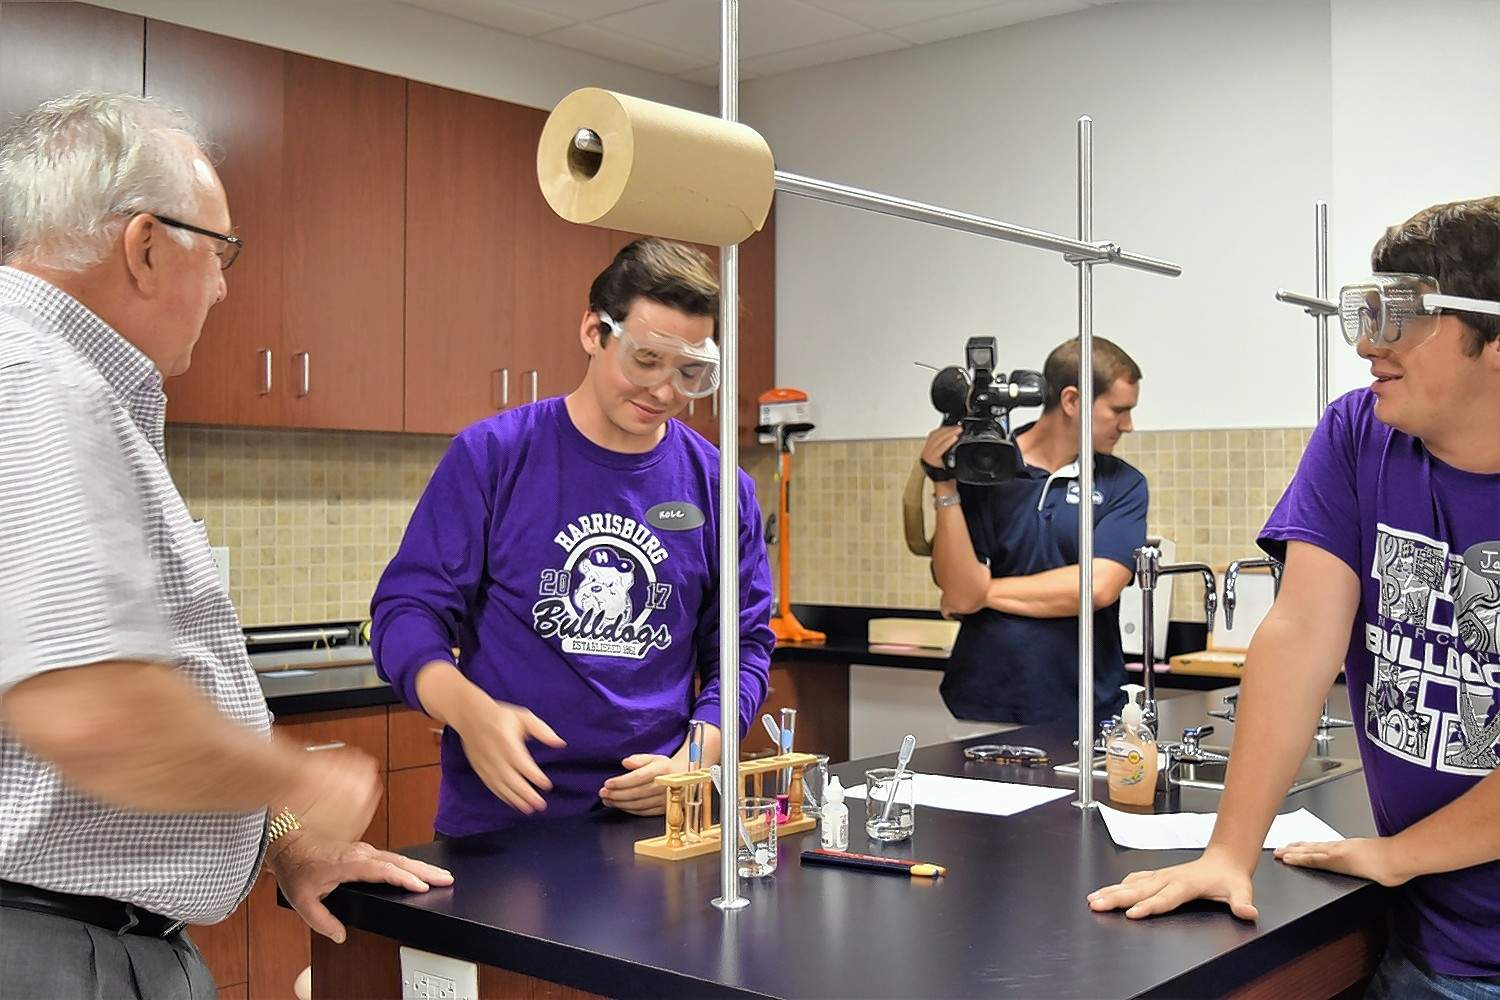 Seniors Kole Phelps, center, and Jack Gulley give a demonstration of science equipment to Paul Jones, left.